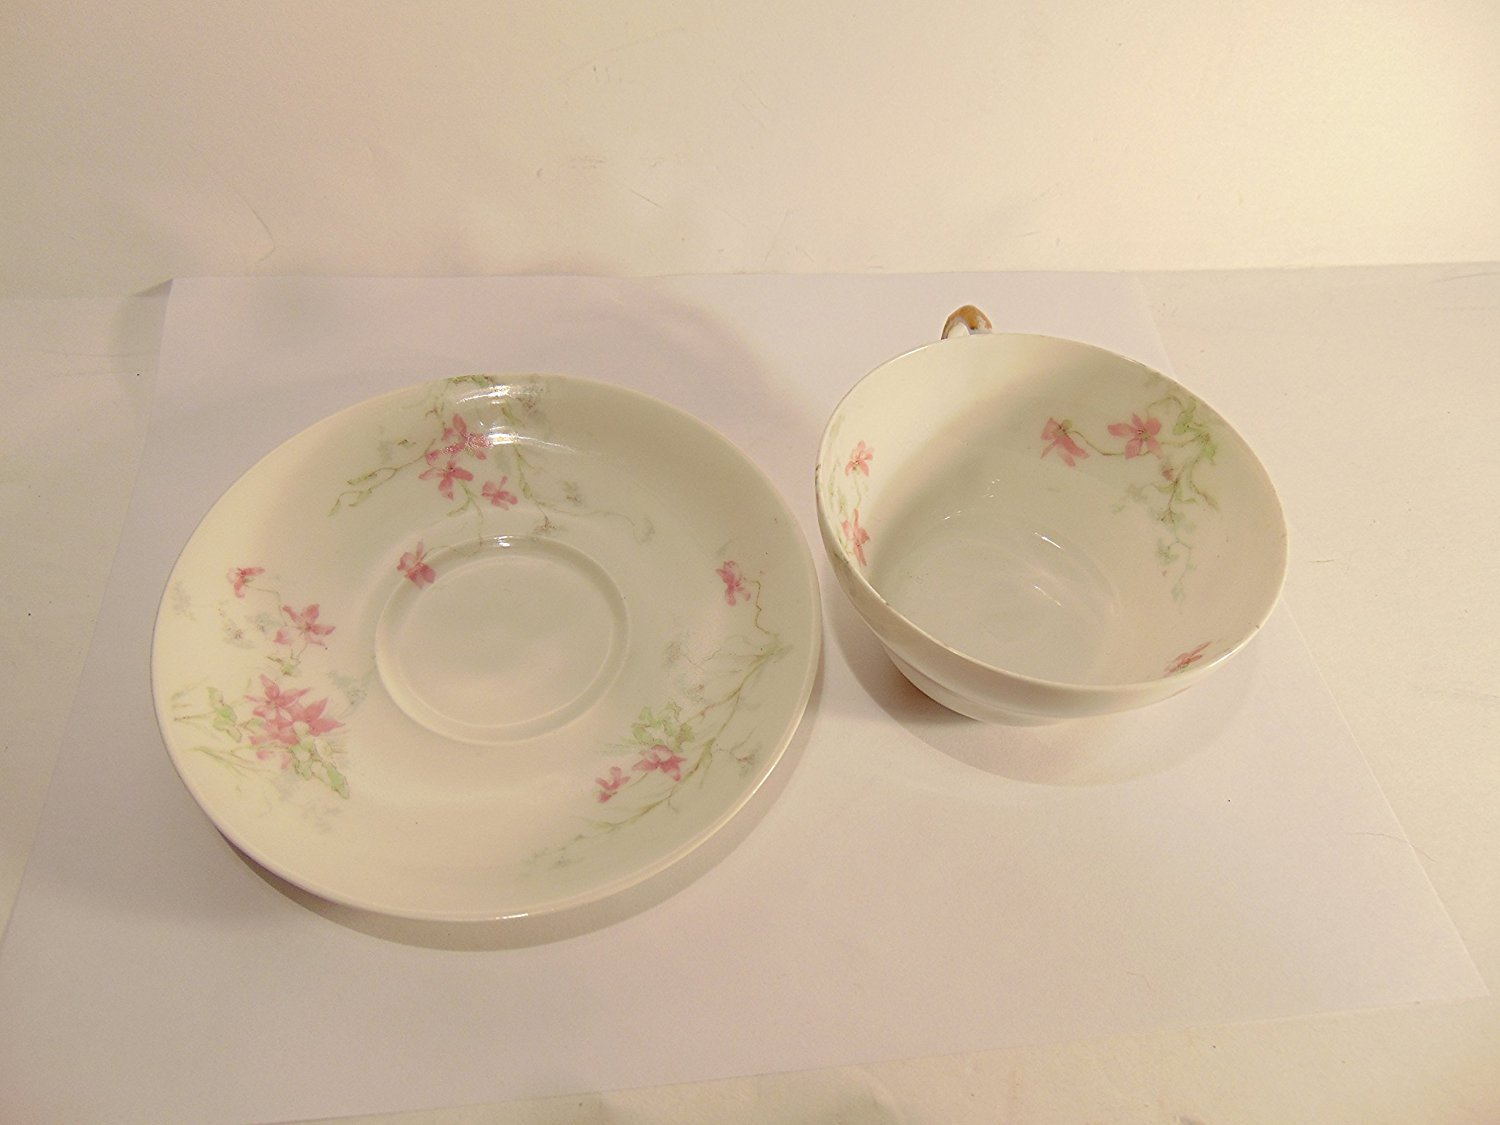 Limoges China Patterns Gold Trim Interesting Decorating Design